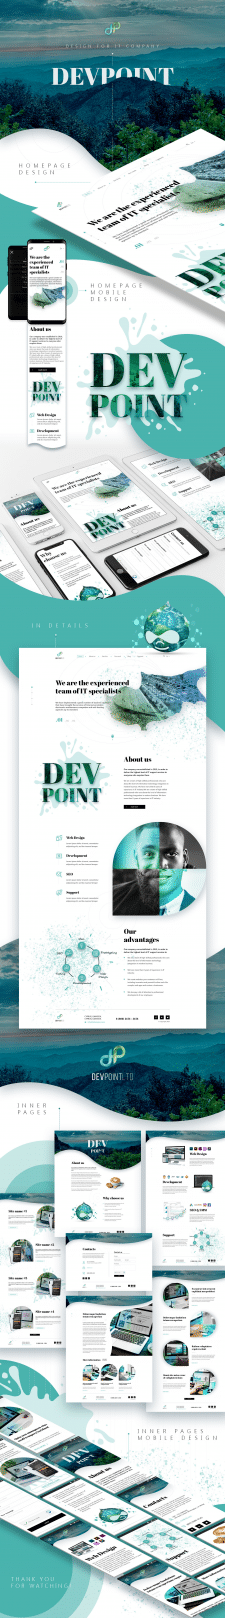 Design for IT company on Cyprus